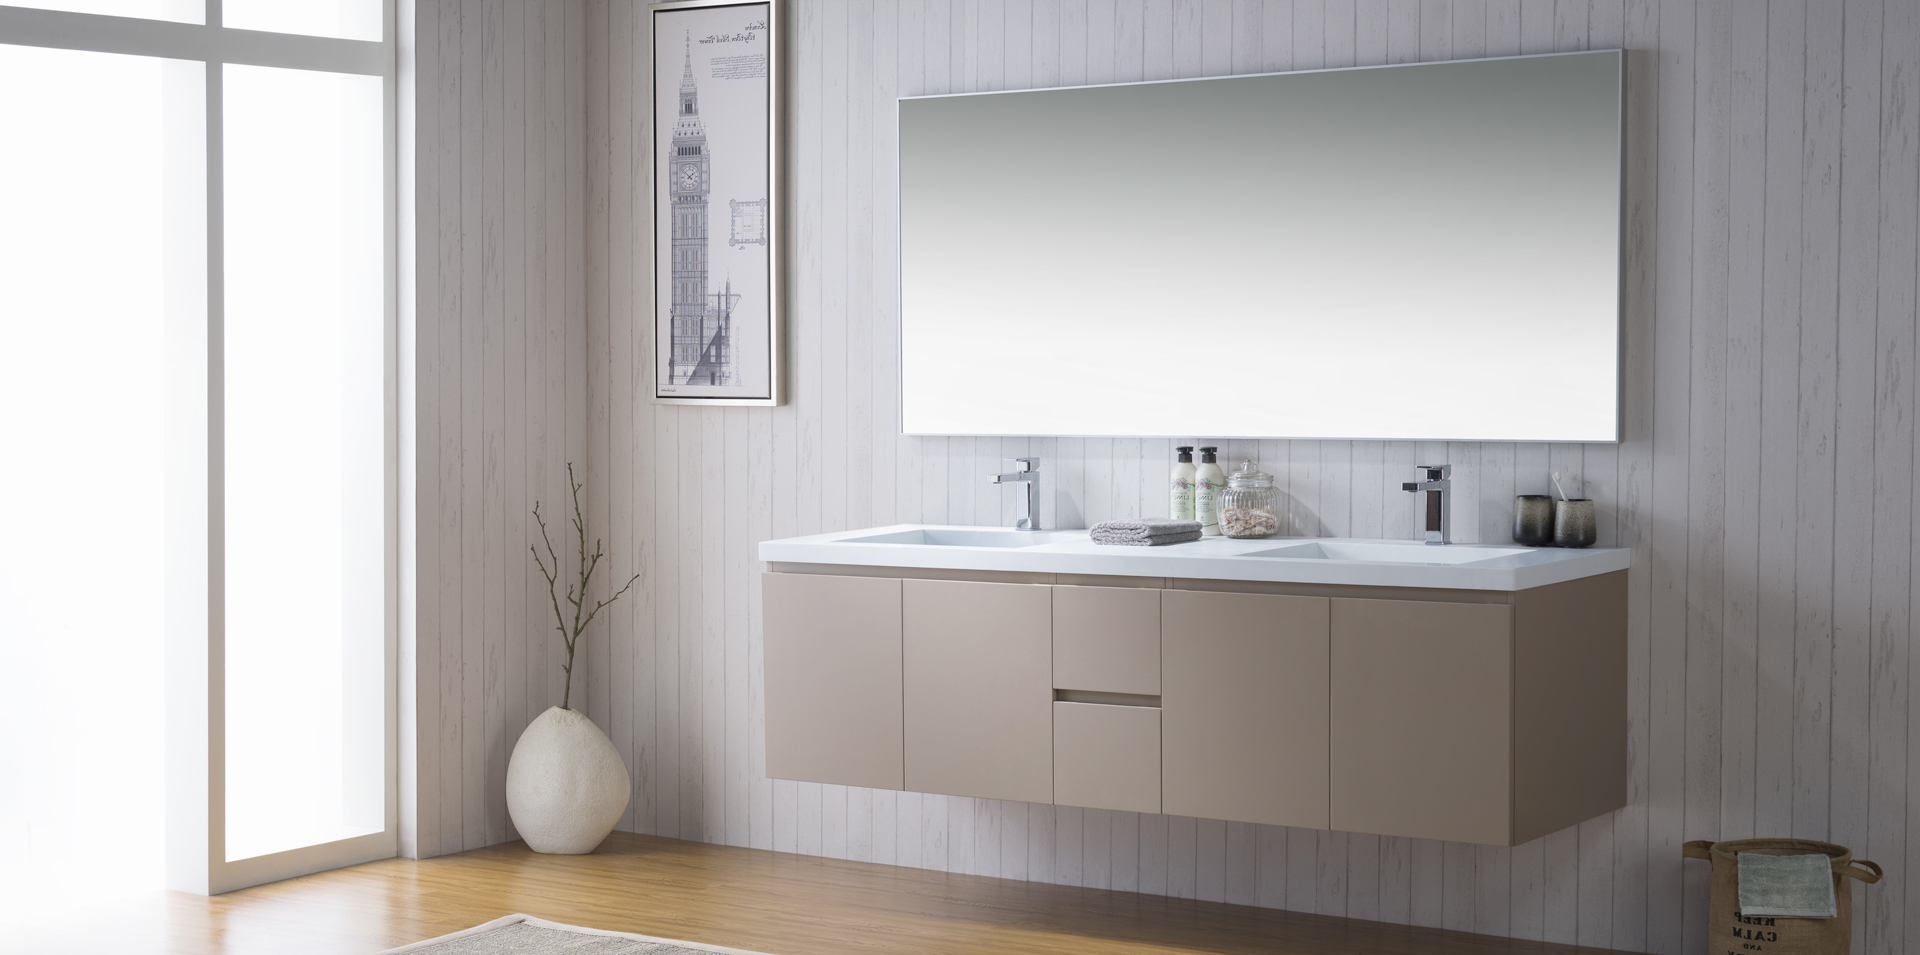 Modern Bathroom Vanities Cabinets Faucets Bathroom Place Miami - Bathroom vanity websites